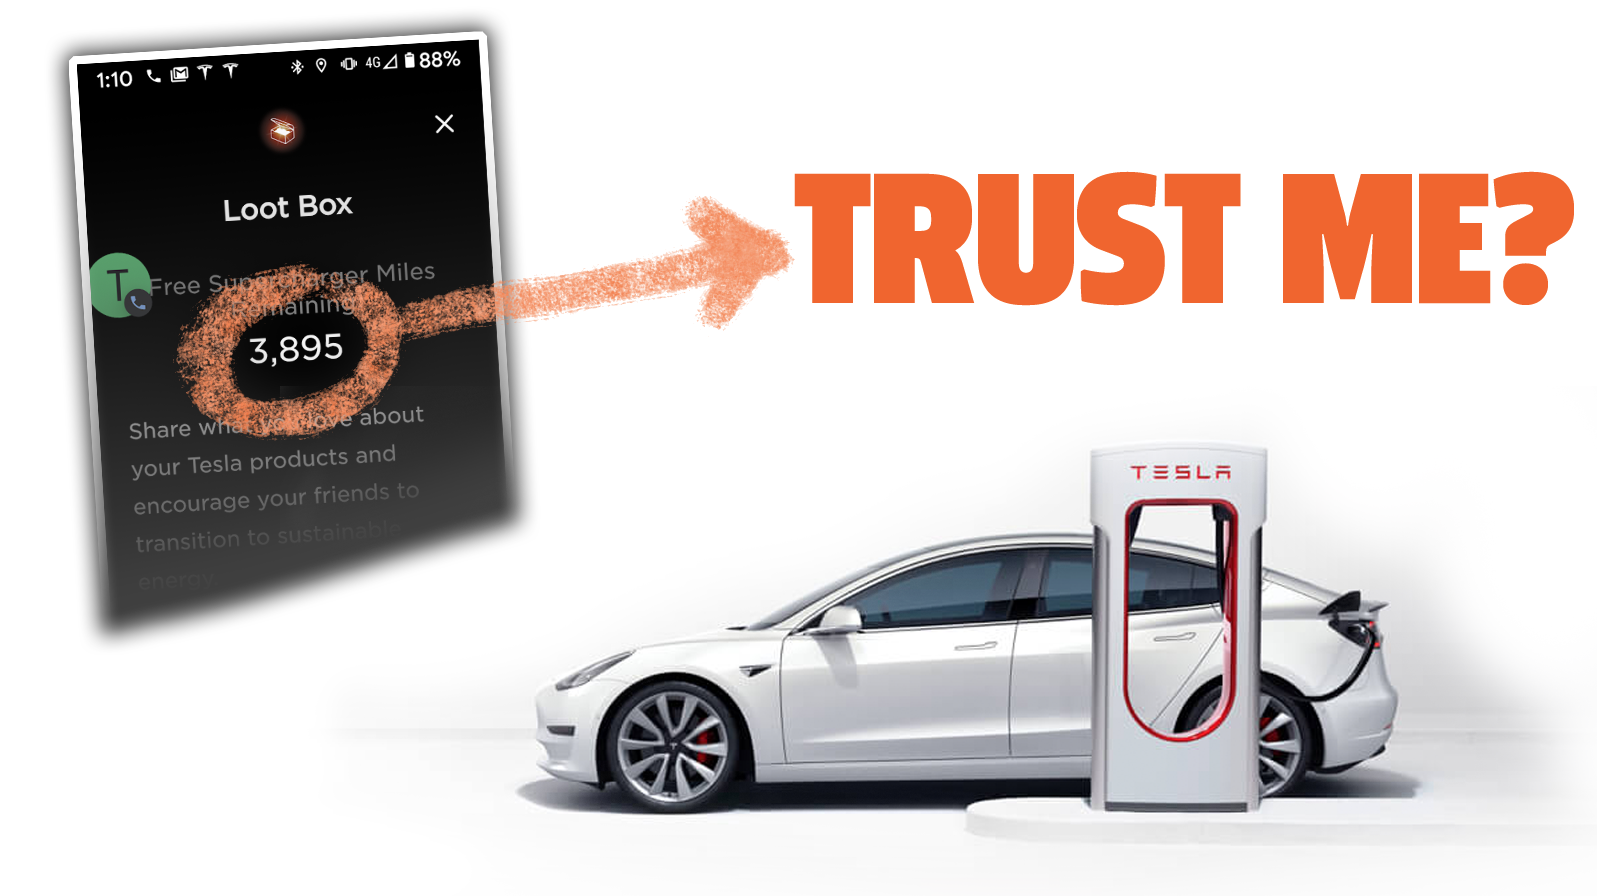 Confusing User Interface And Poor Communication From Tesla Leaves Driver Stranded On Road Trip